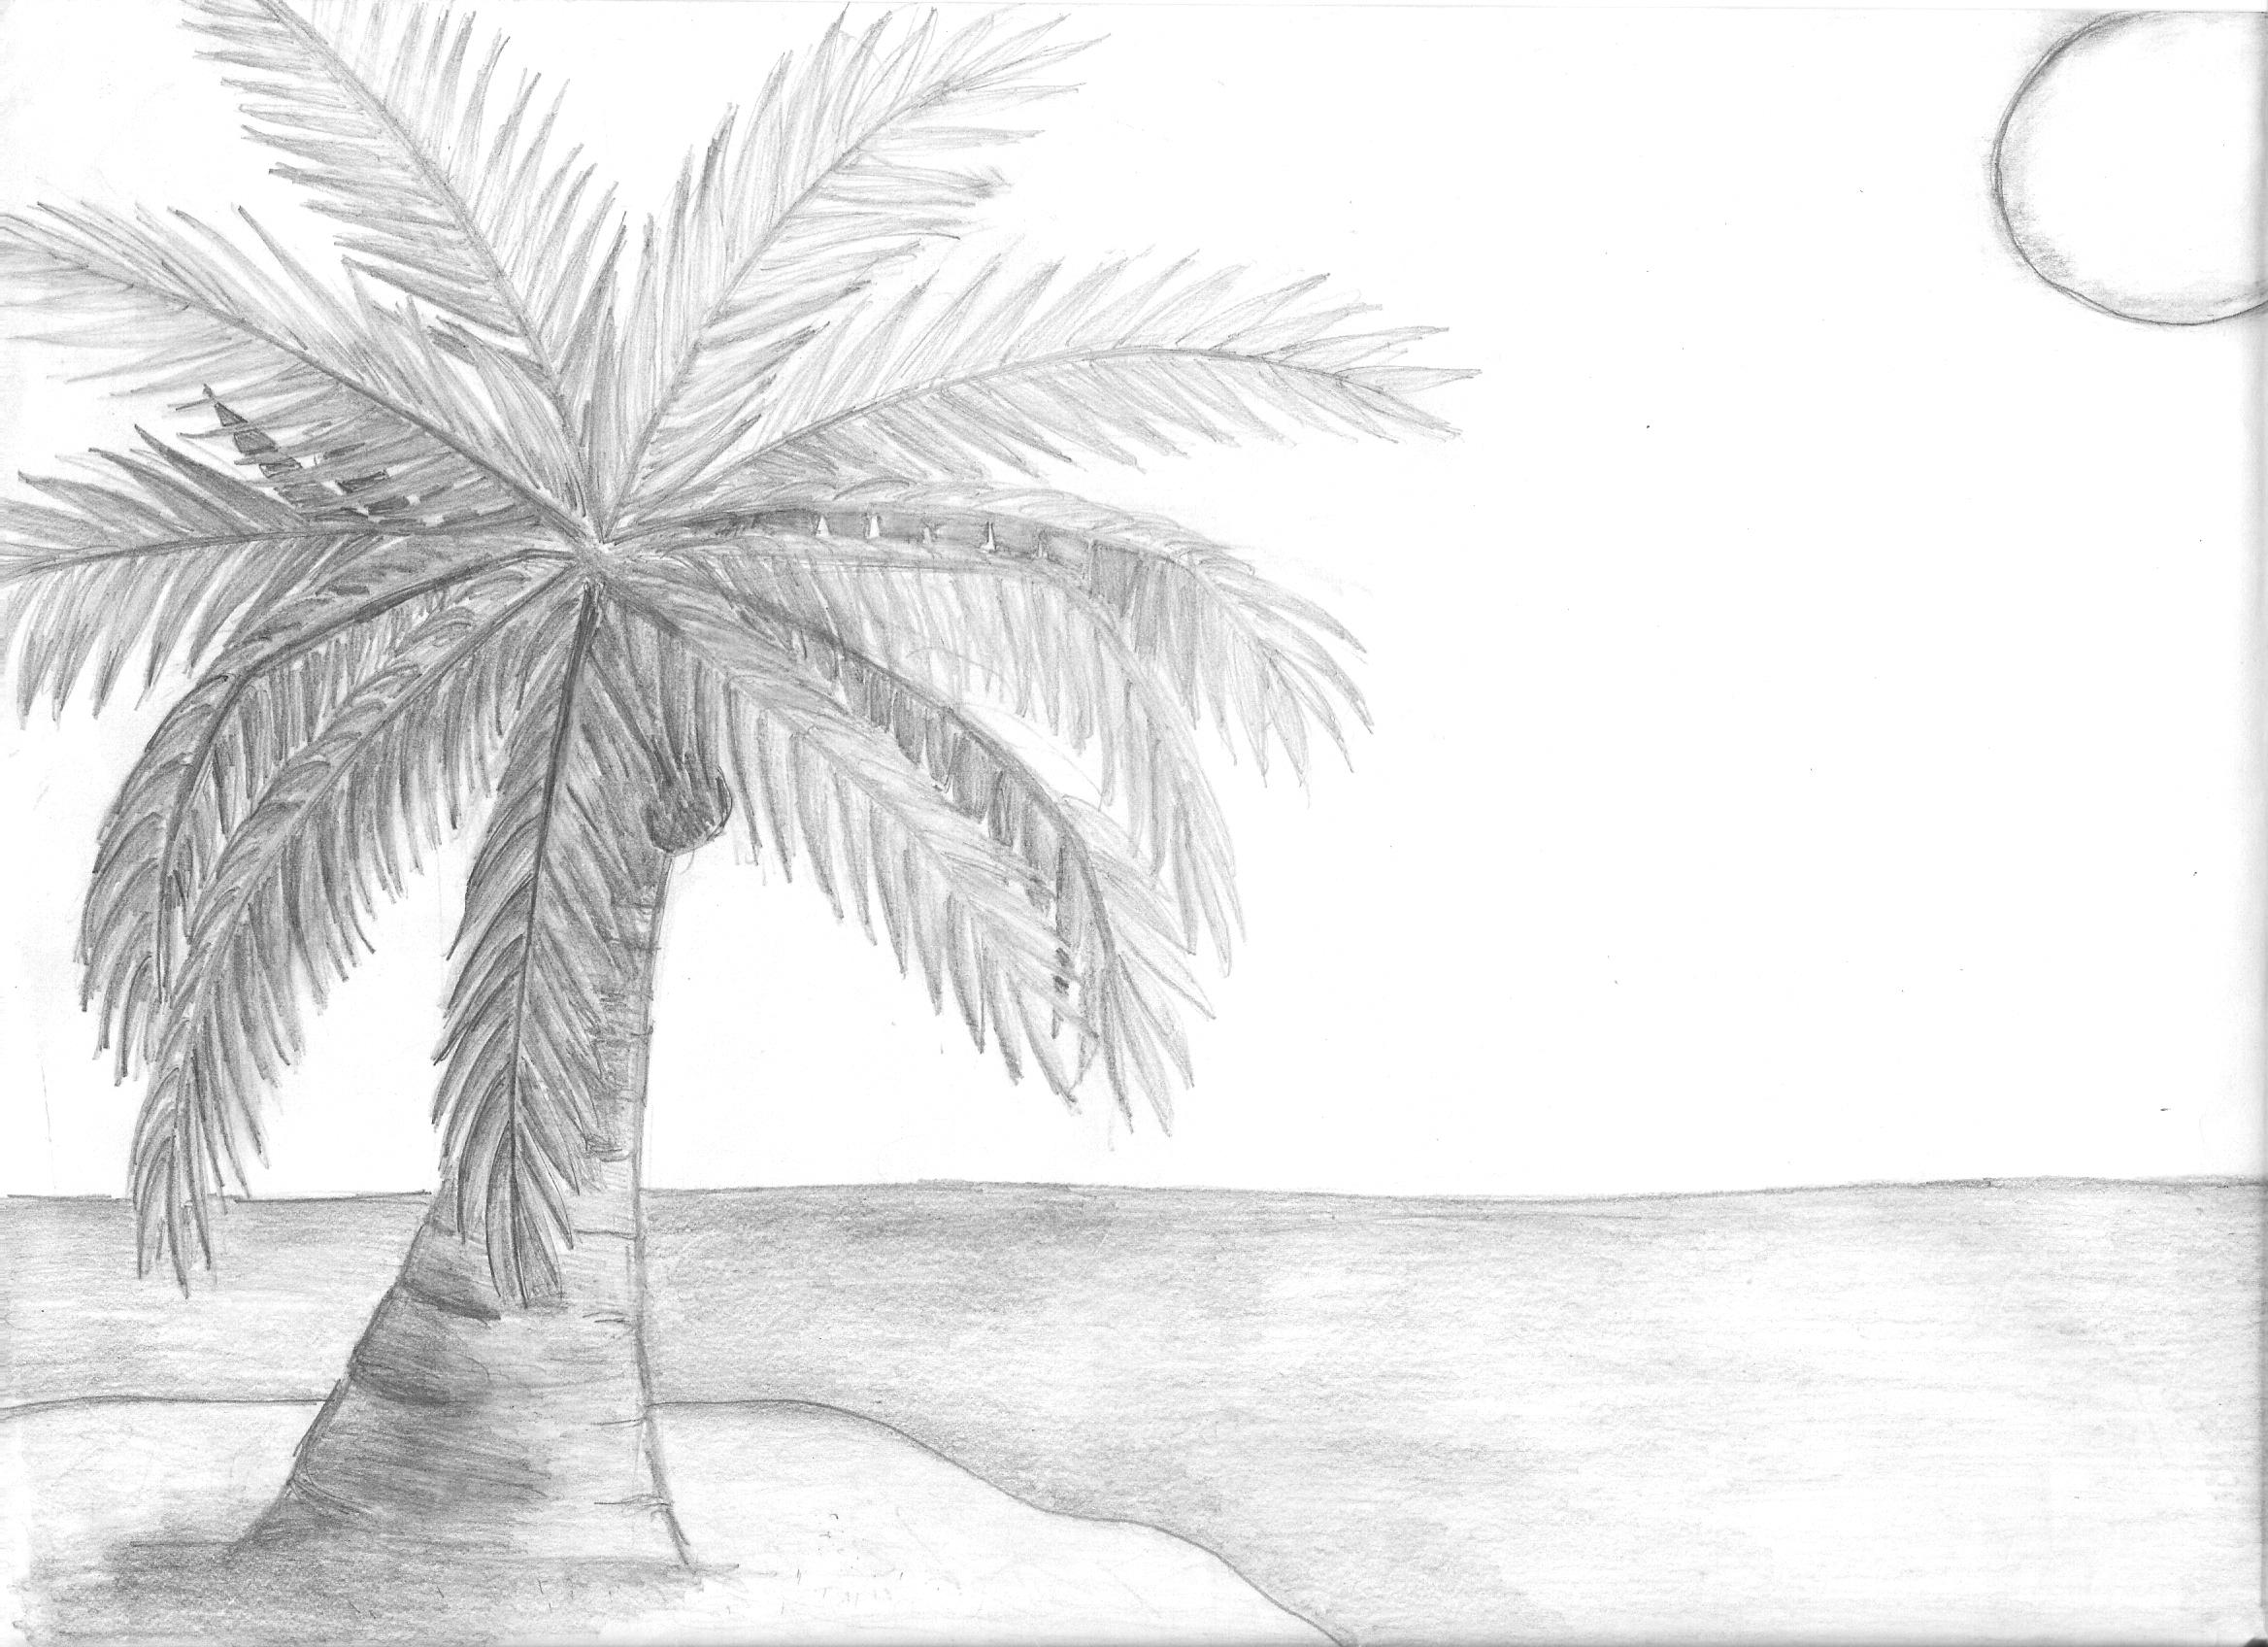 palm tree with coconuts drawing - photo #8